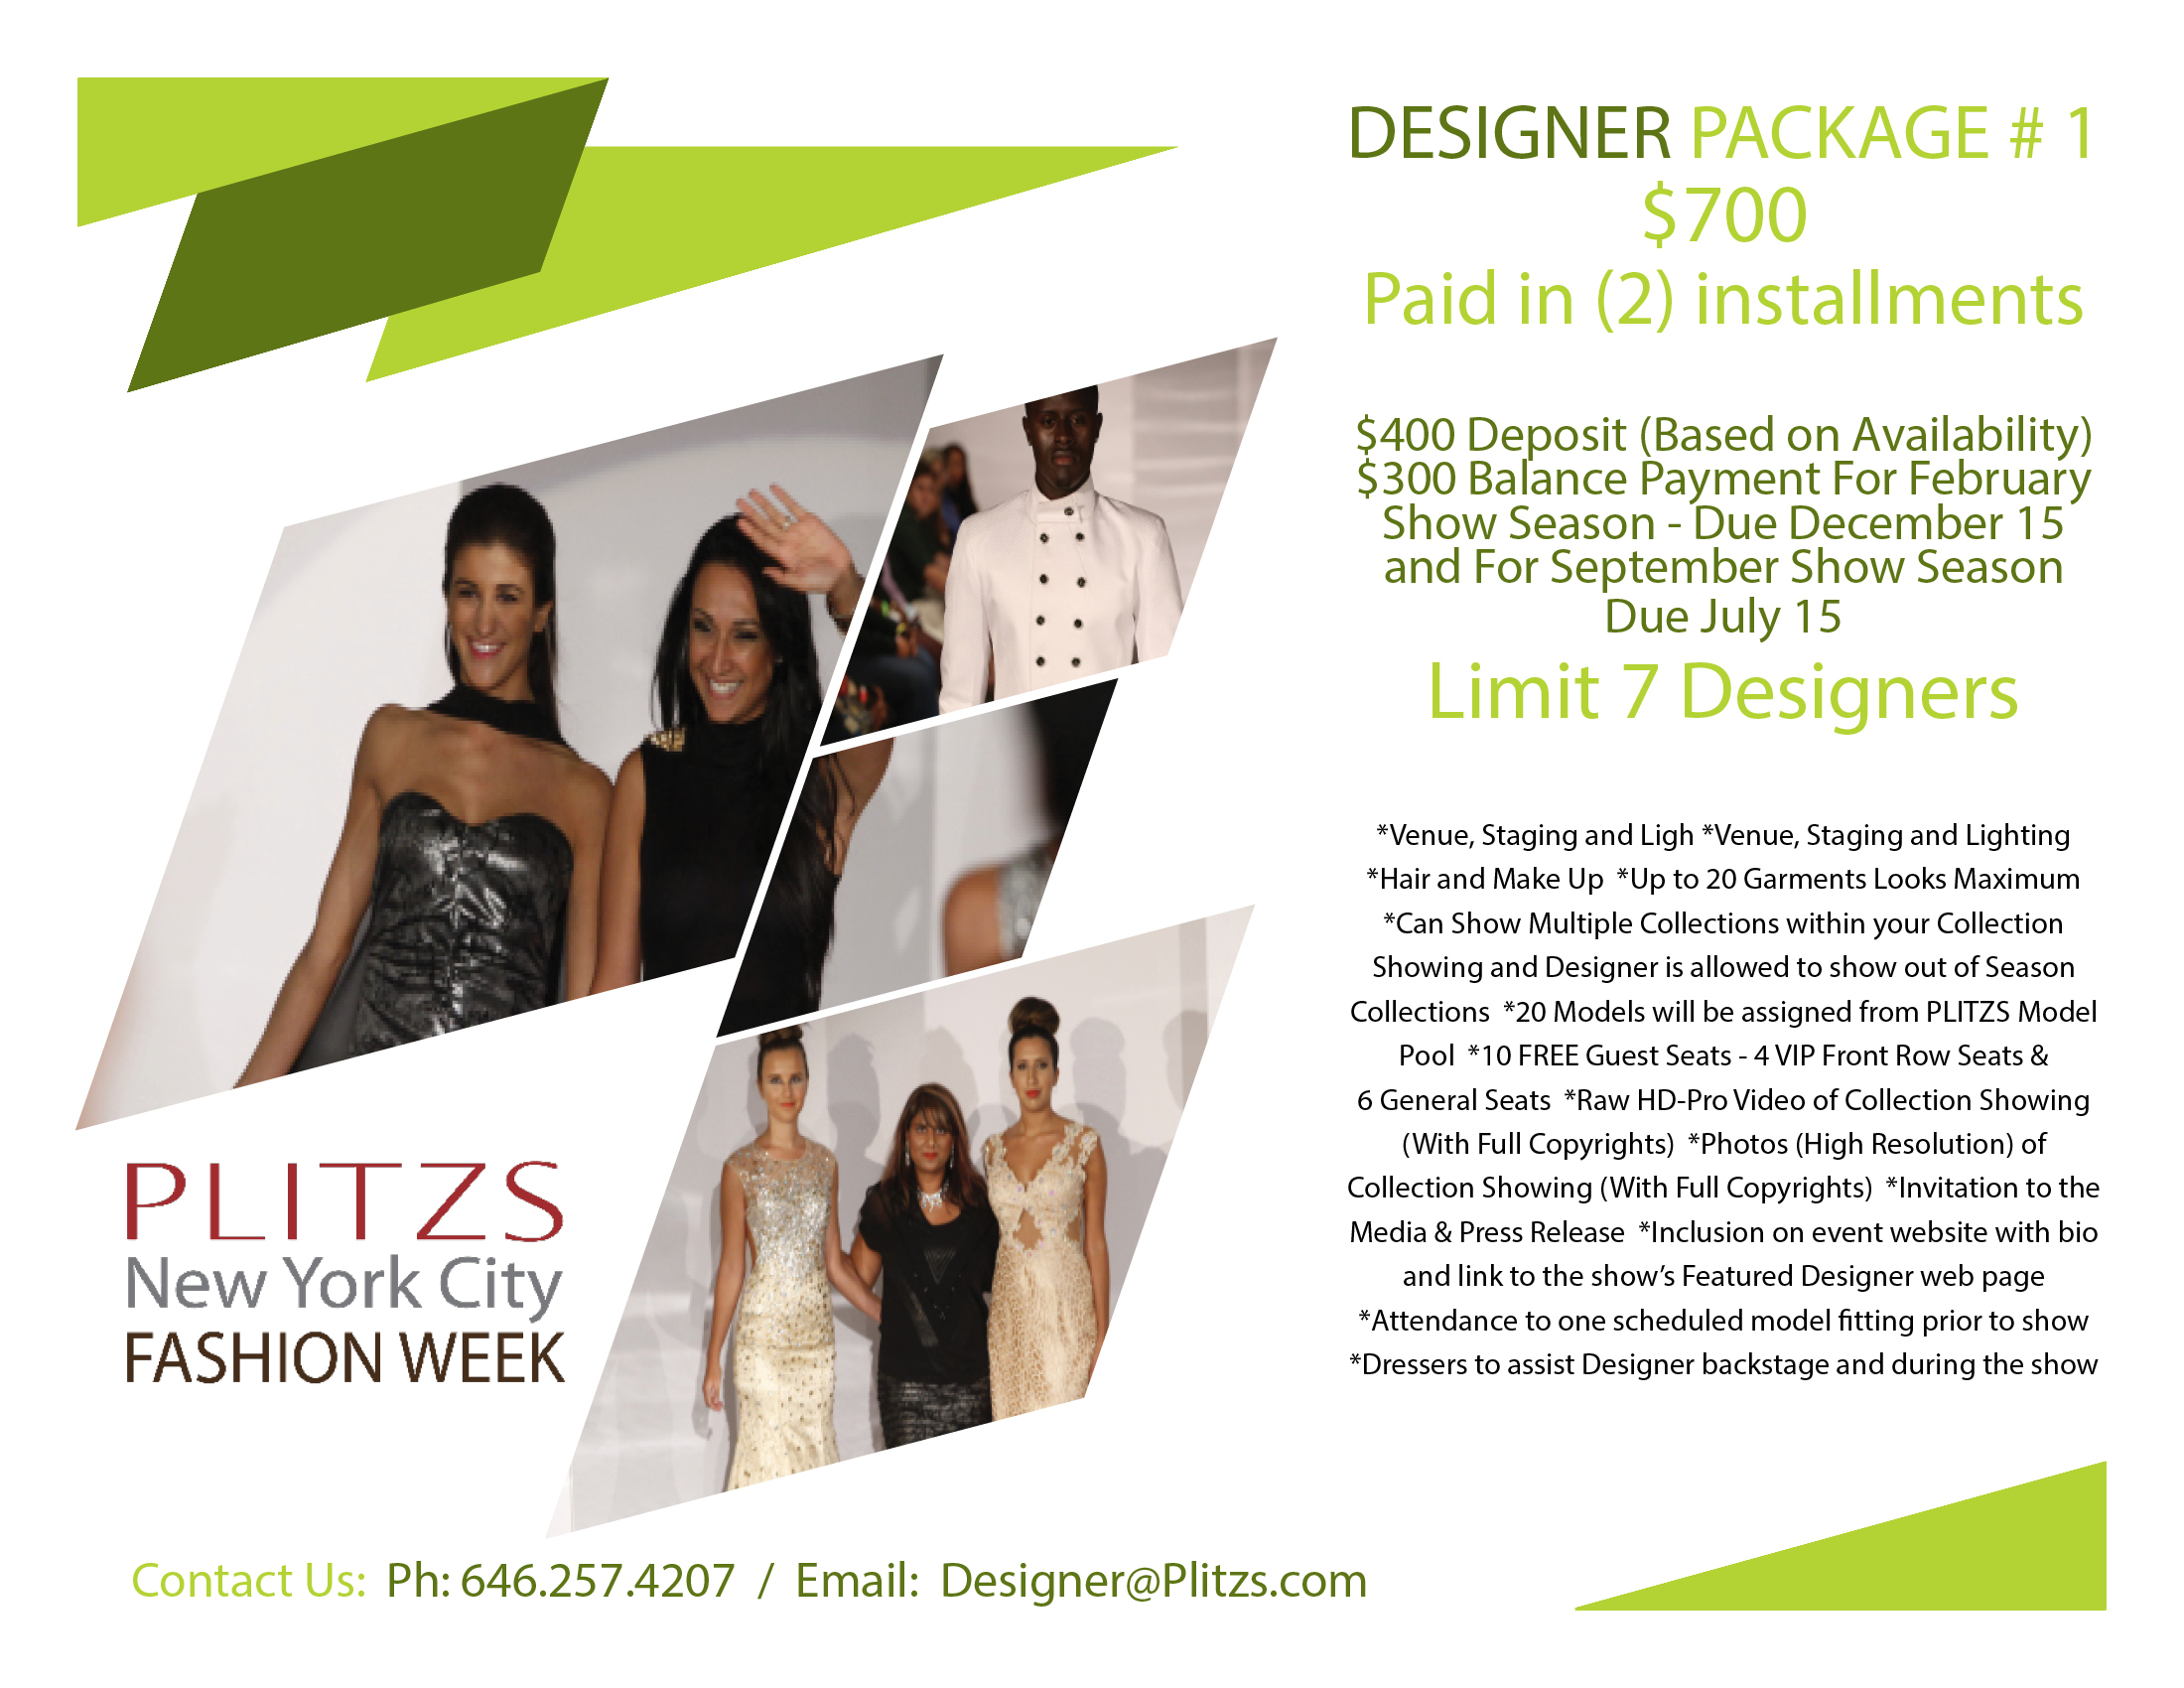 Designer Package #1